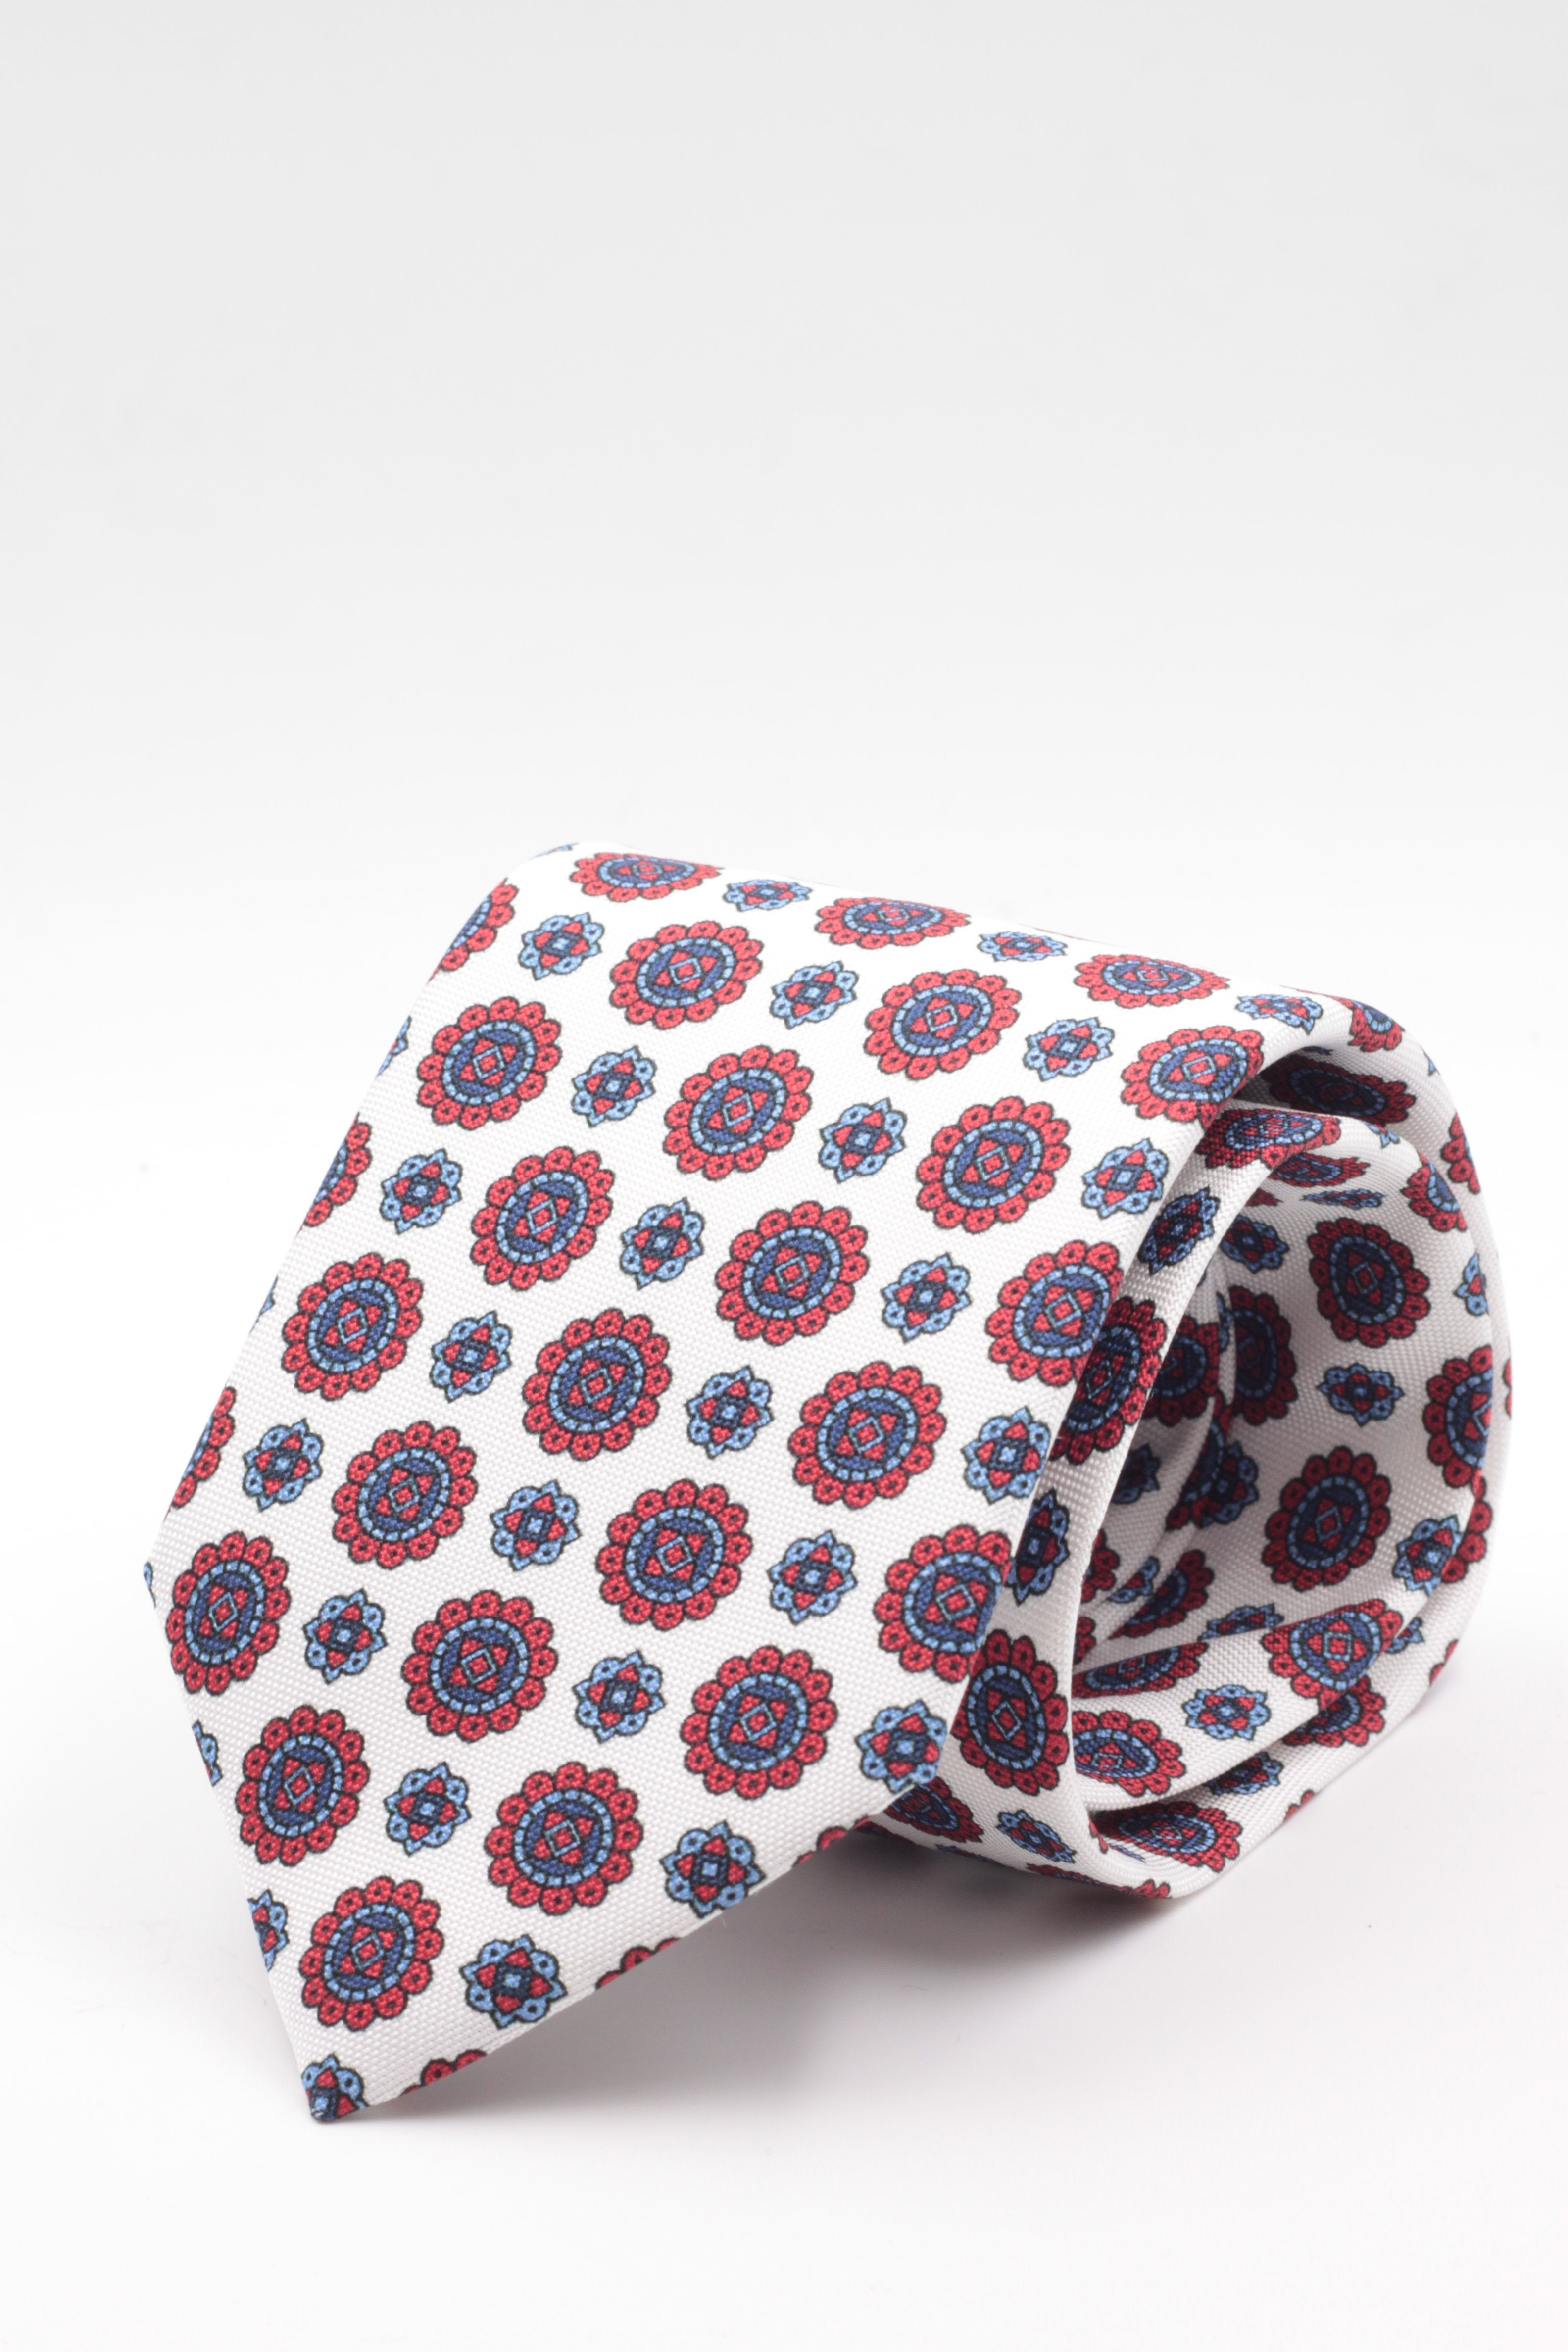 100% Printed Panama Silk Italia fabric Self Tipped White, red and light blue motif tie  Handmade in Italy 8 cm x 150 cm